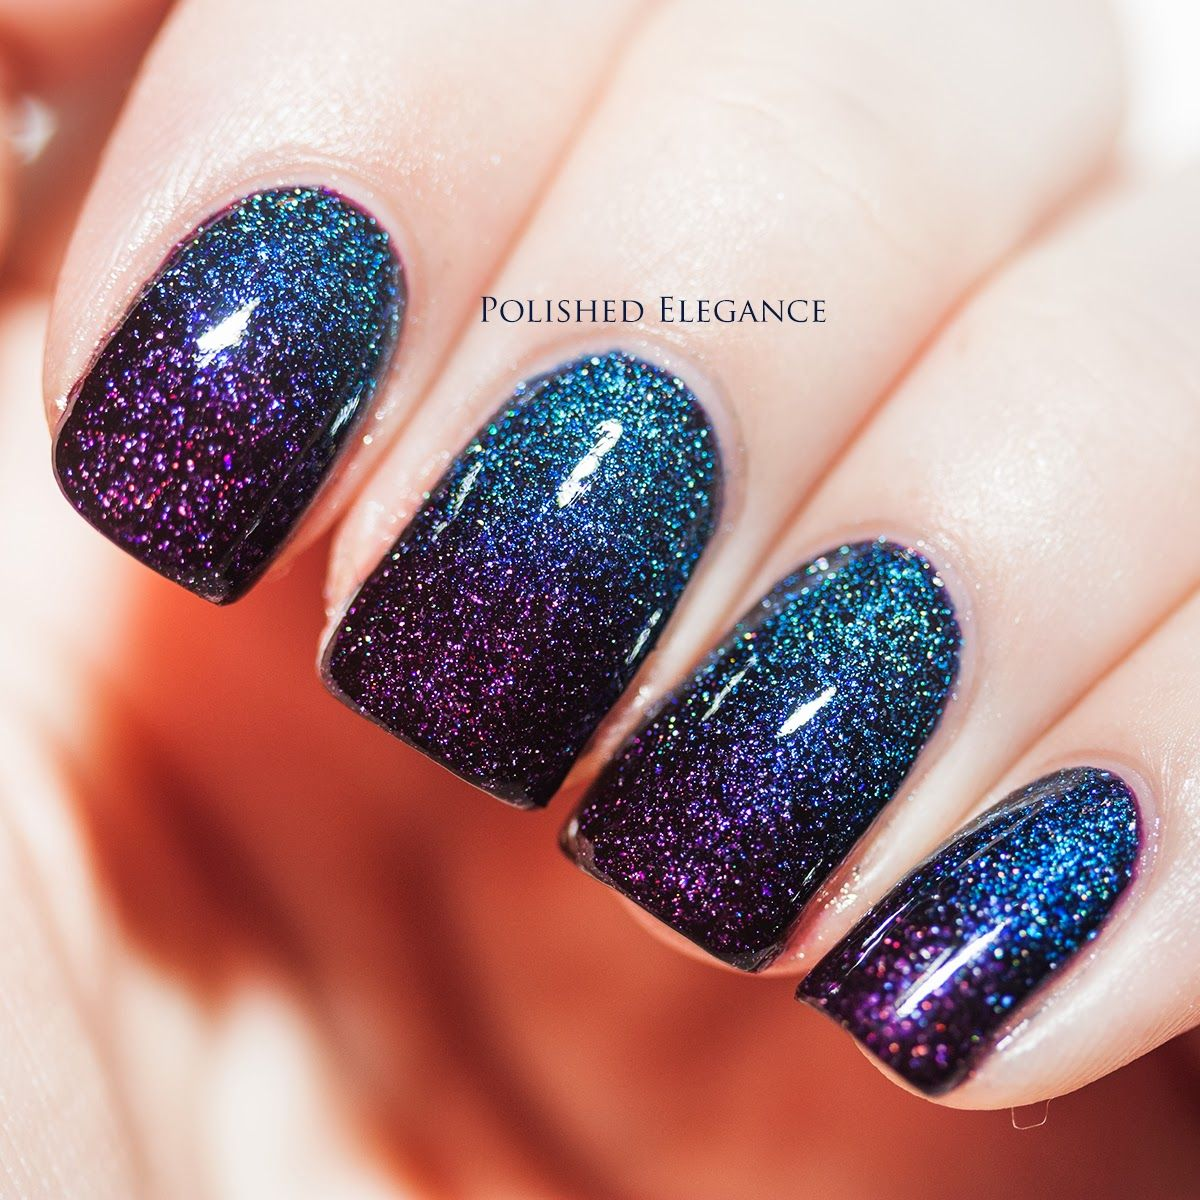 Zoya Dream and Payton gradient manicure nail art swatches | Gradient ...